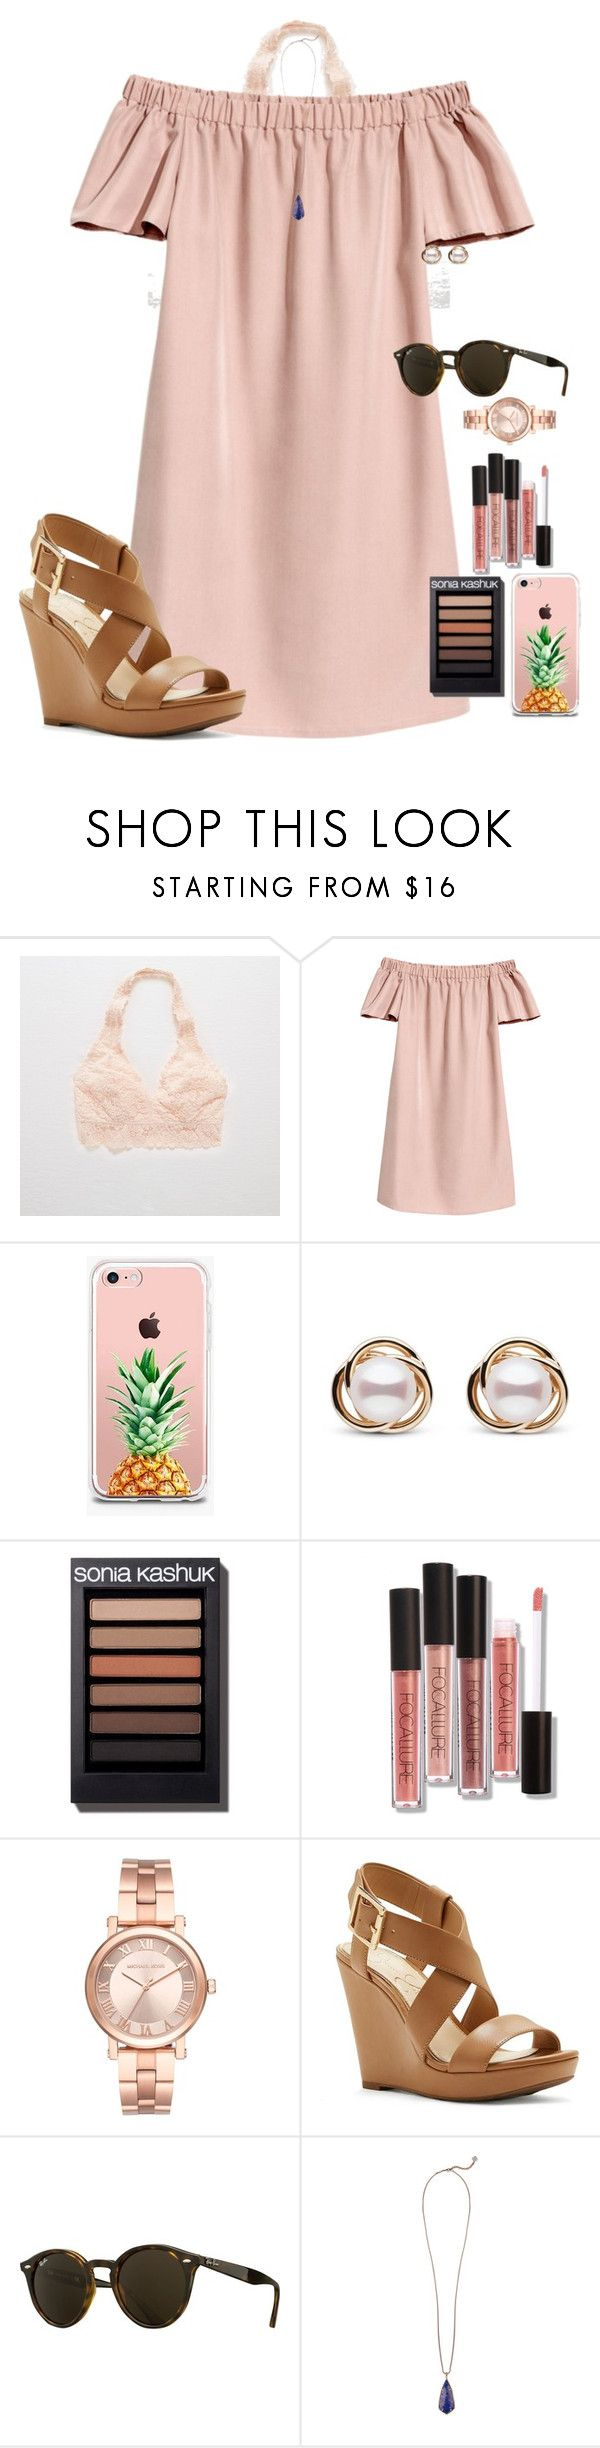 """Last day of tennis camp"" by auburnlady ❤ liked on Polyvore featuring Aerie, The Casery, Trilogy, Michael Kors, Jessica Simpson, Ray-Ban and Kendra Scott"